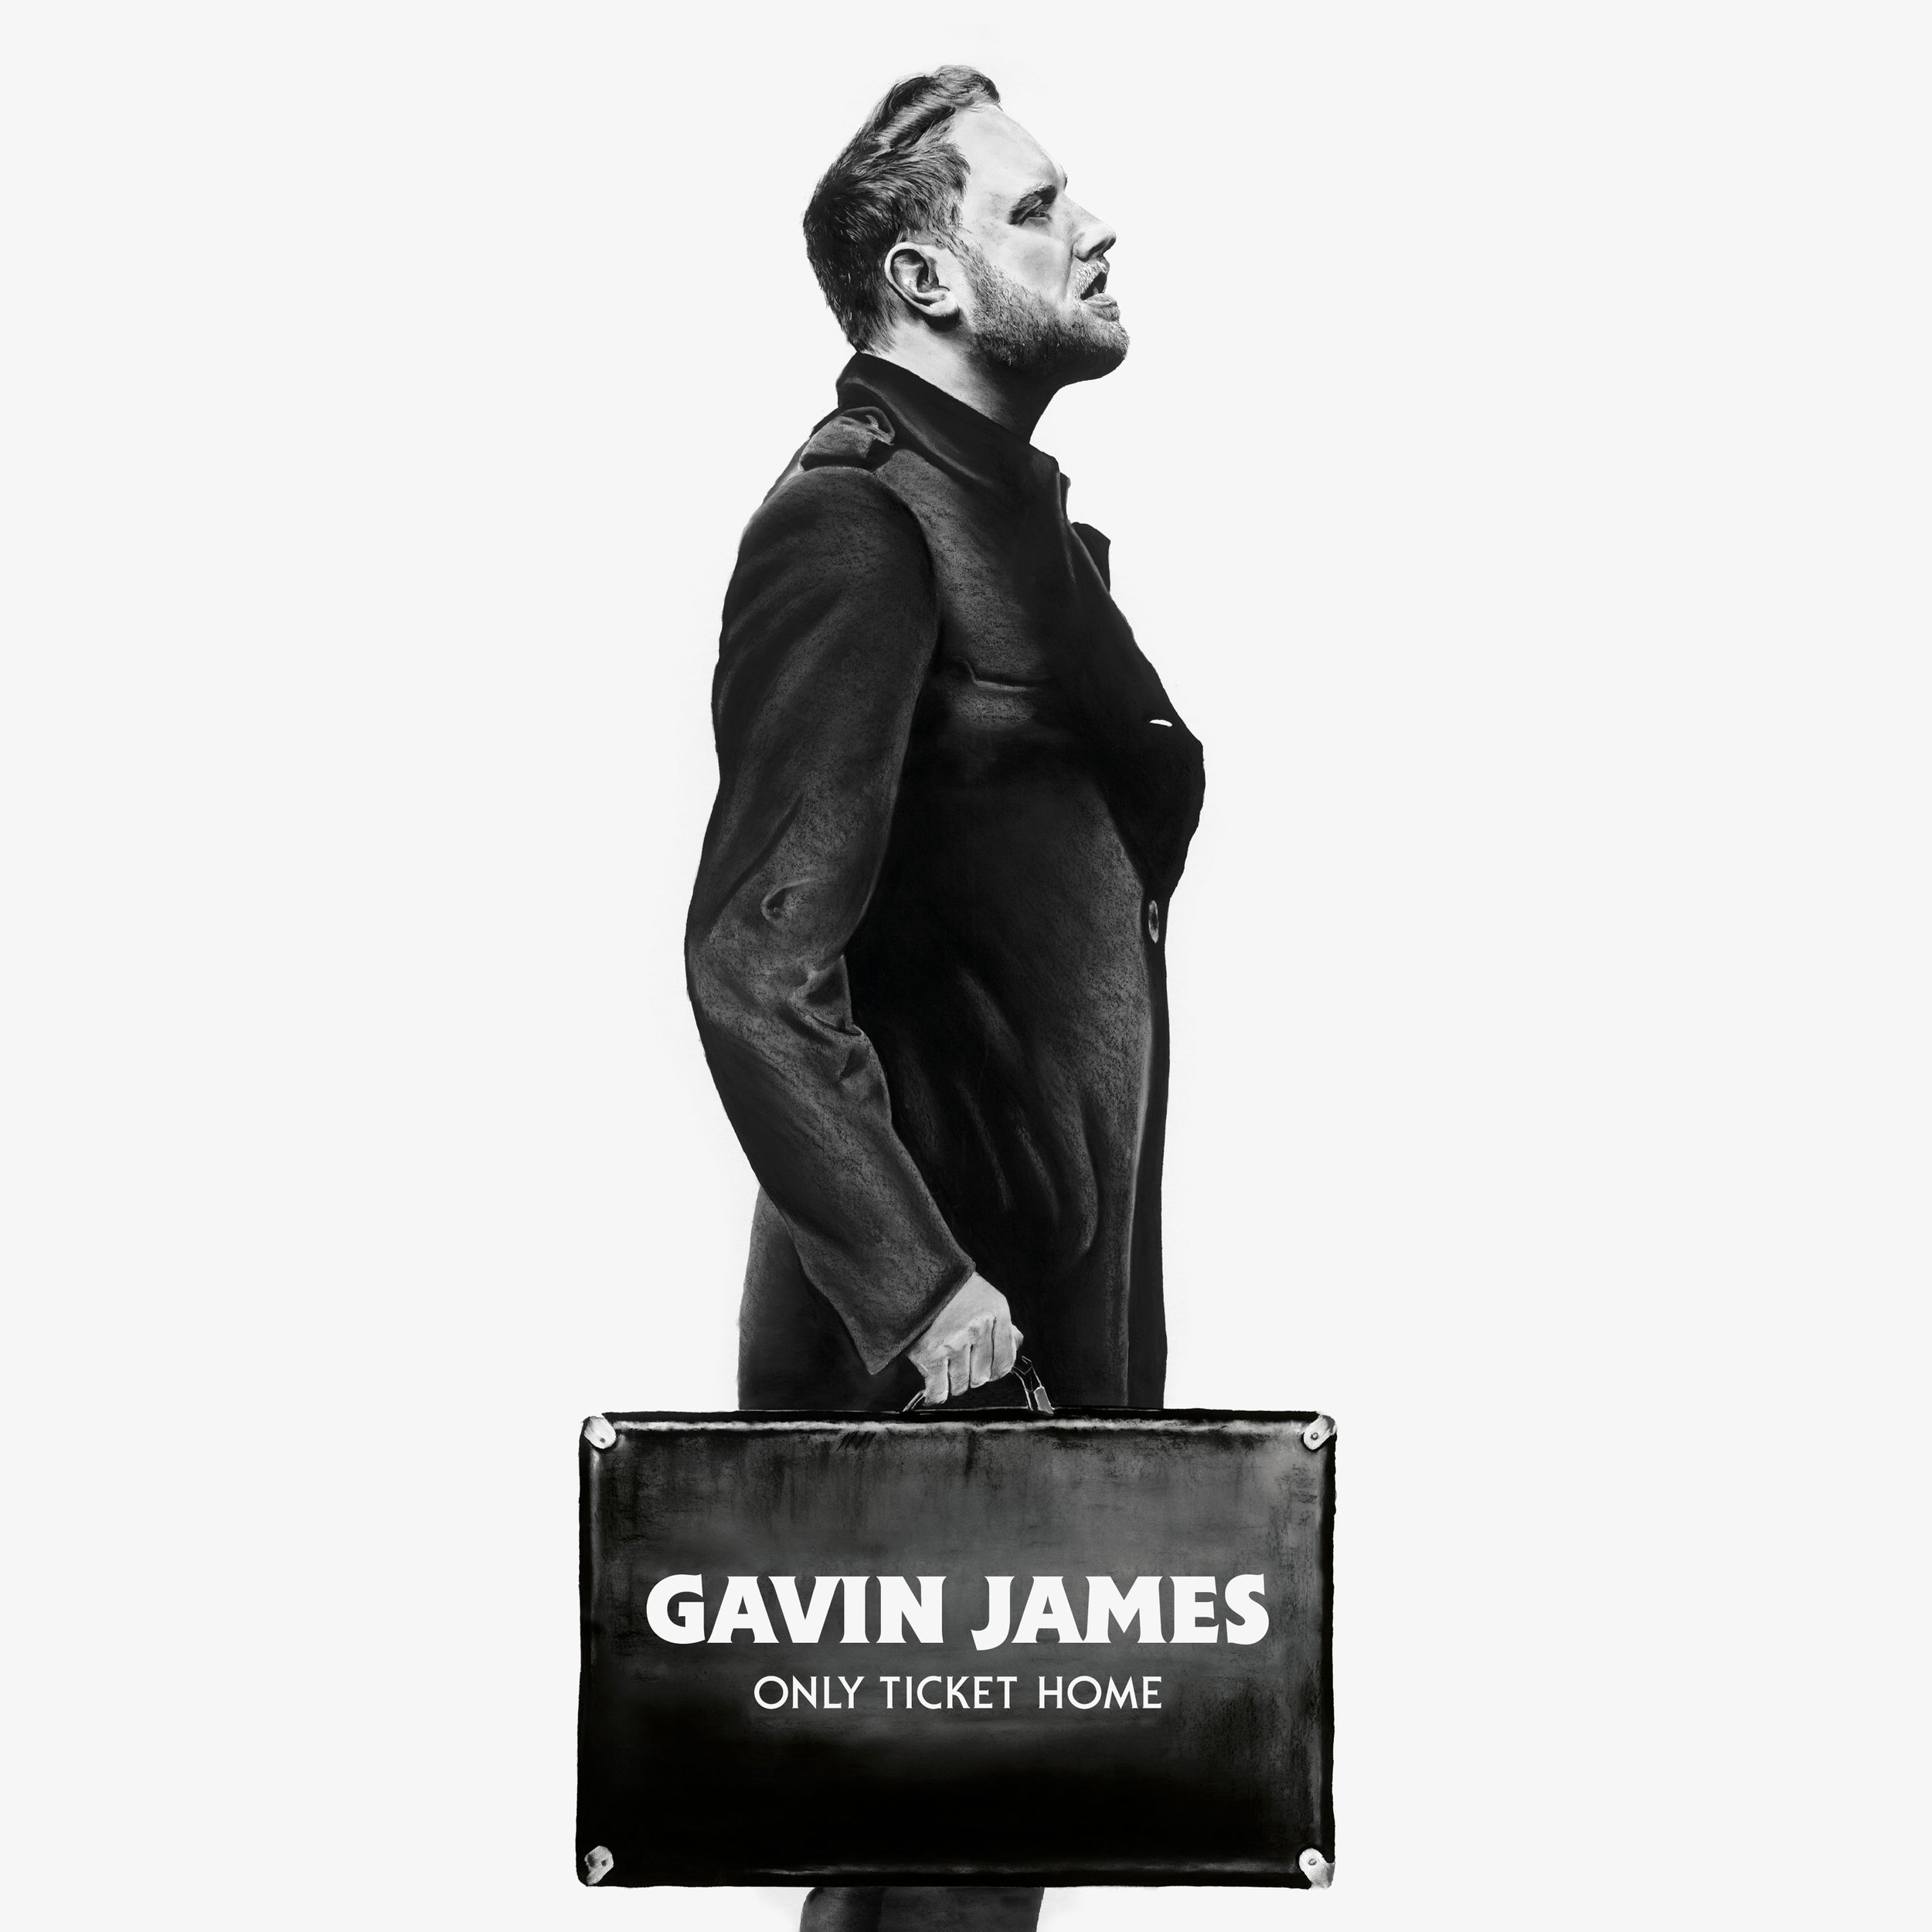 Gavin-James-Only-Ticket-Home-Album-Art.jpg